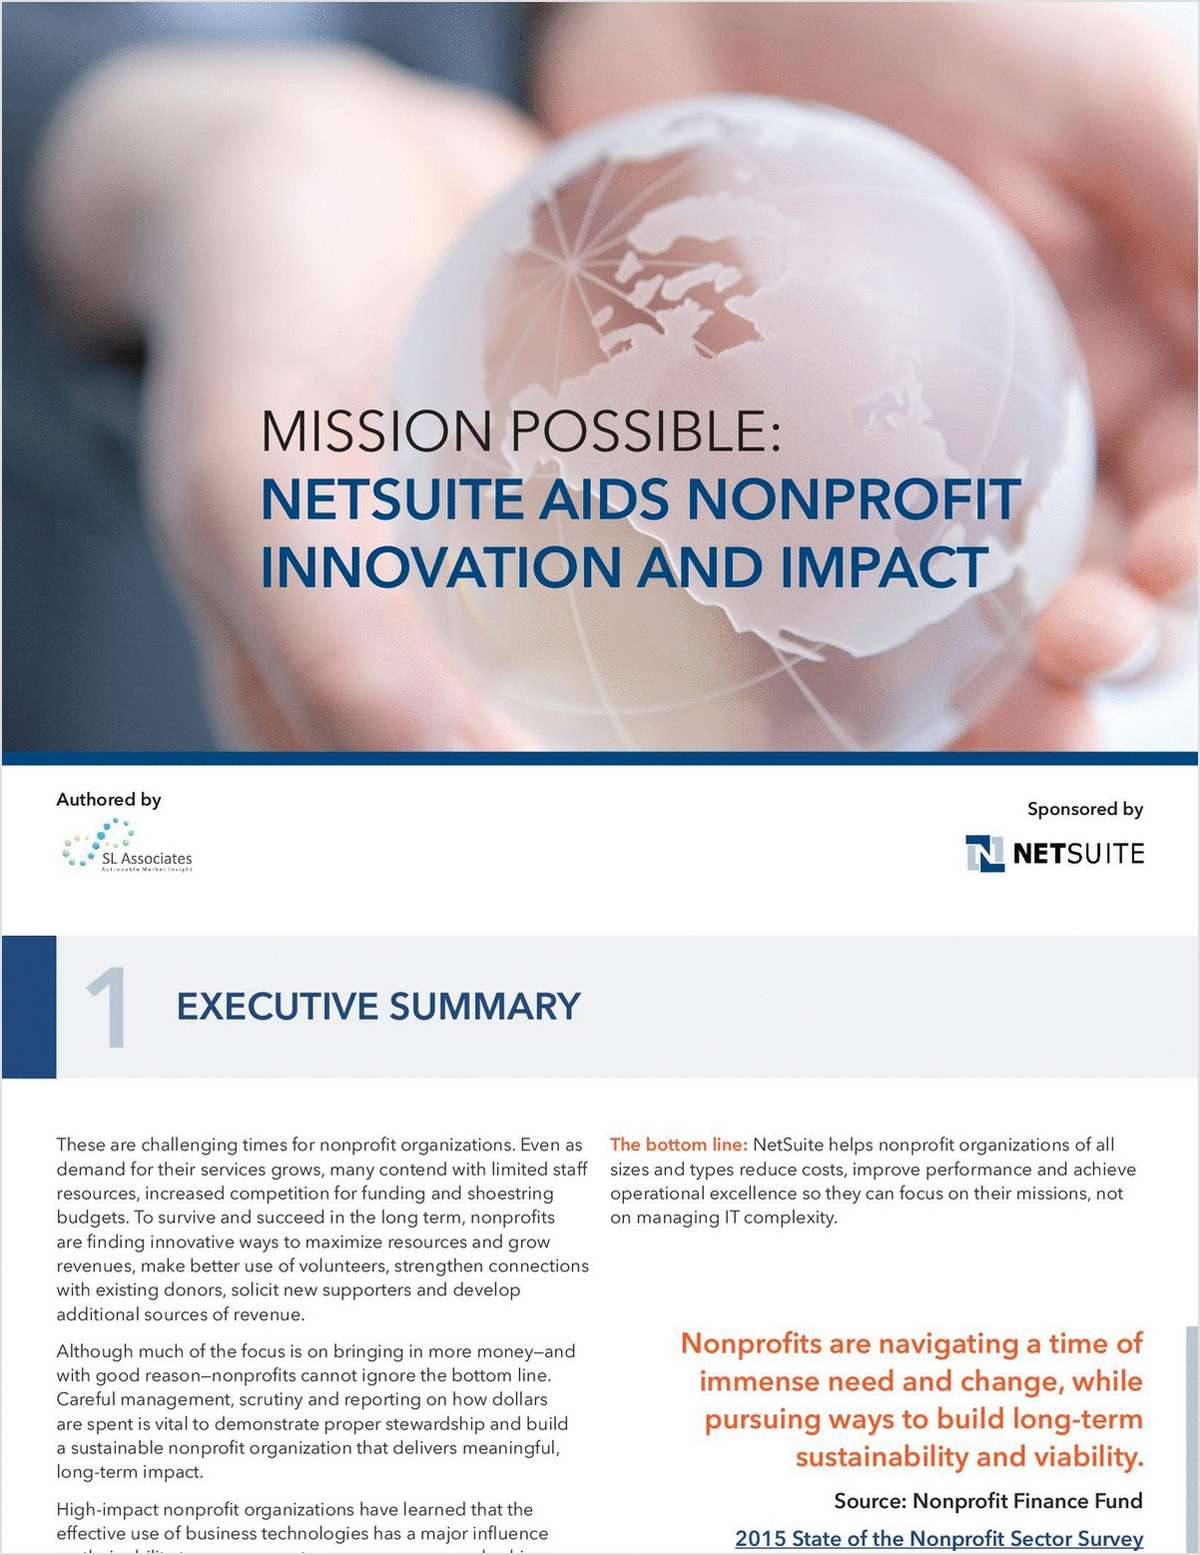 Mission Possible:  NetSuite Aids Nonprofit Innovation and Impact